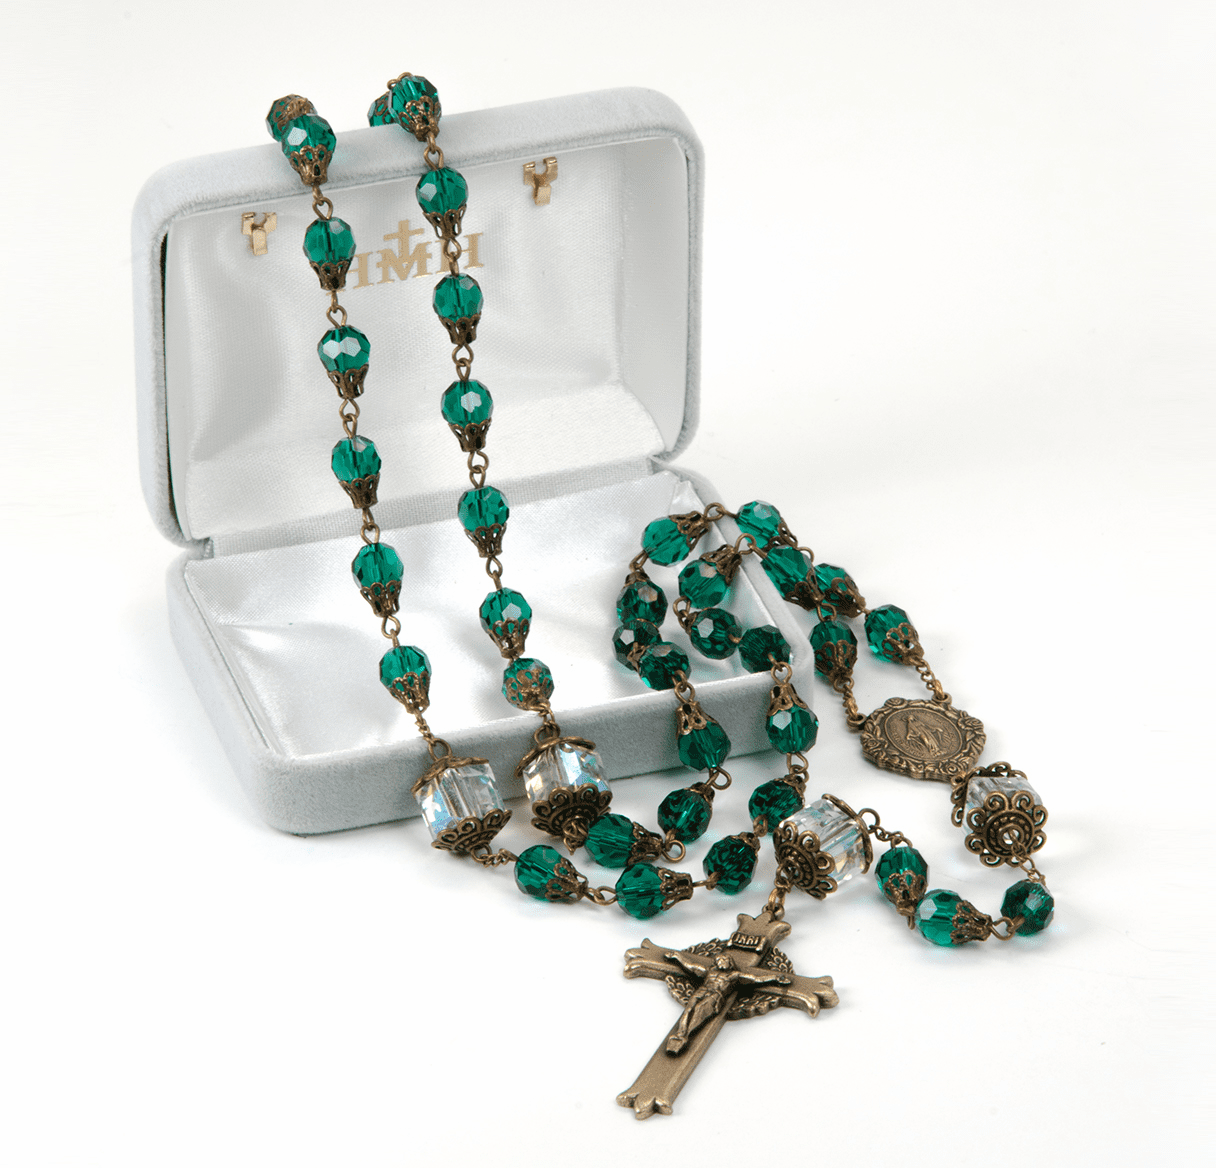 HMH Religious Mary Emerald Crystal Tear Drop Catholic Prayer Rosary